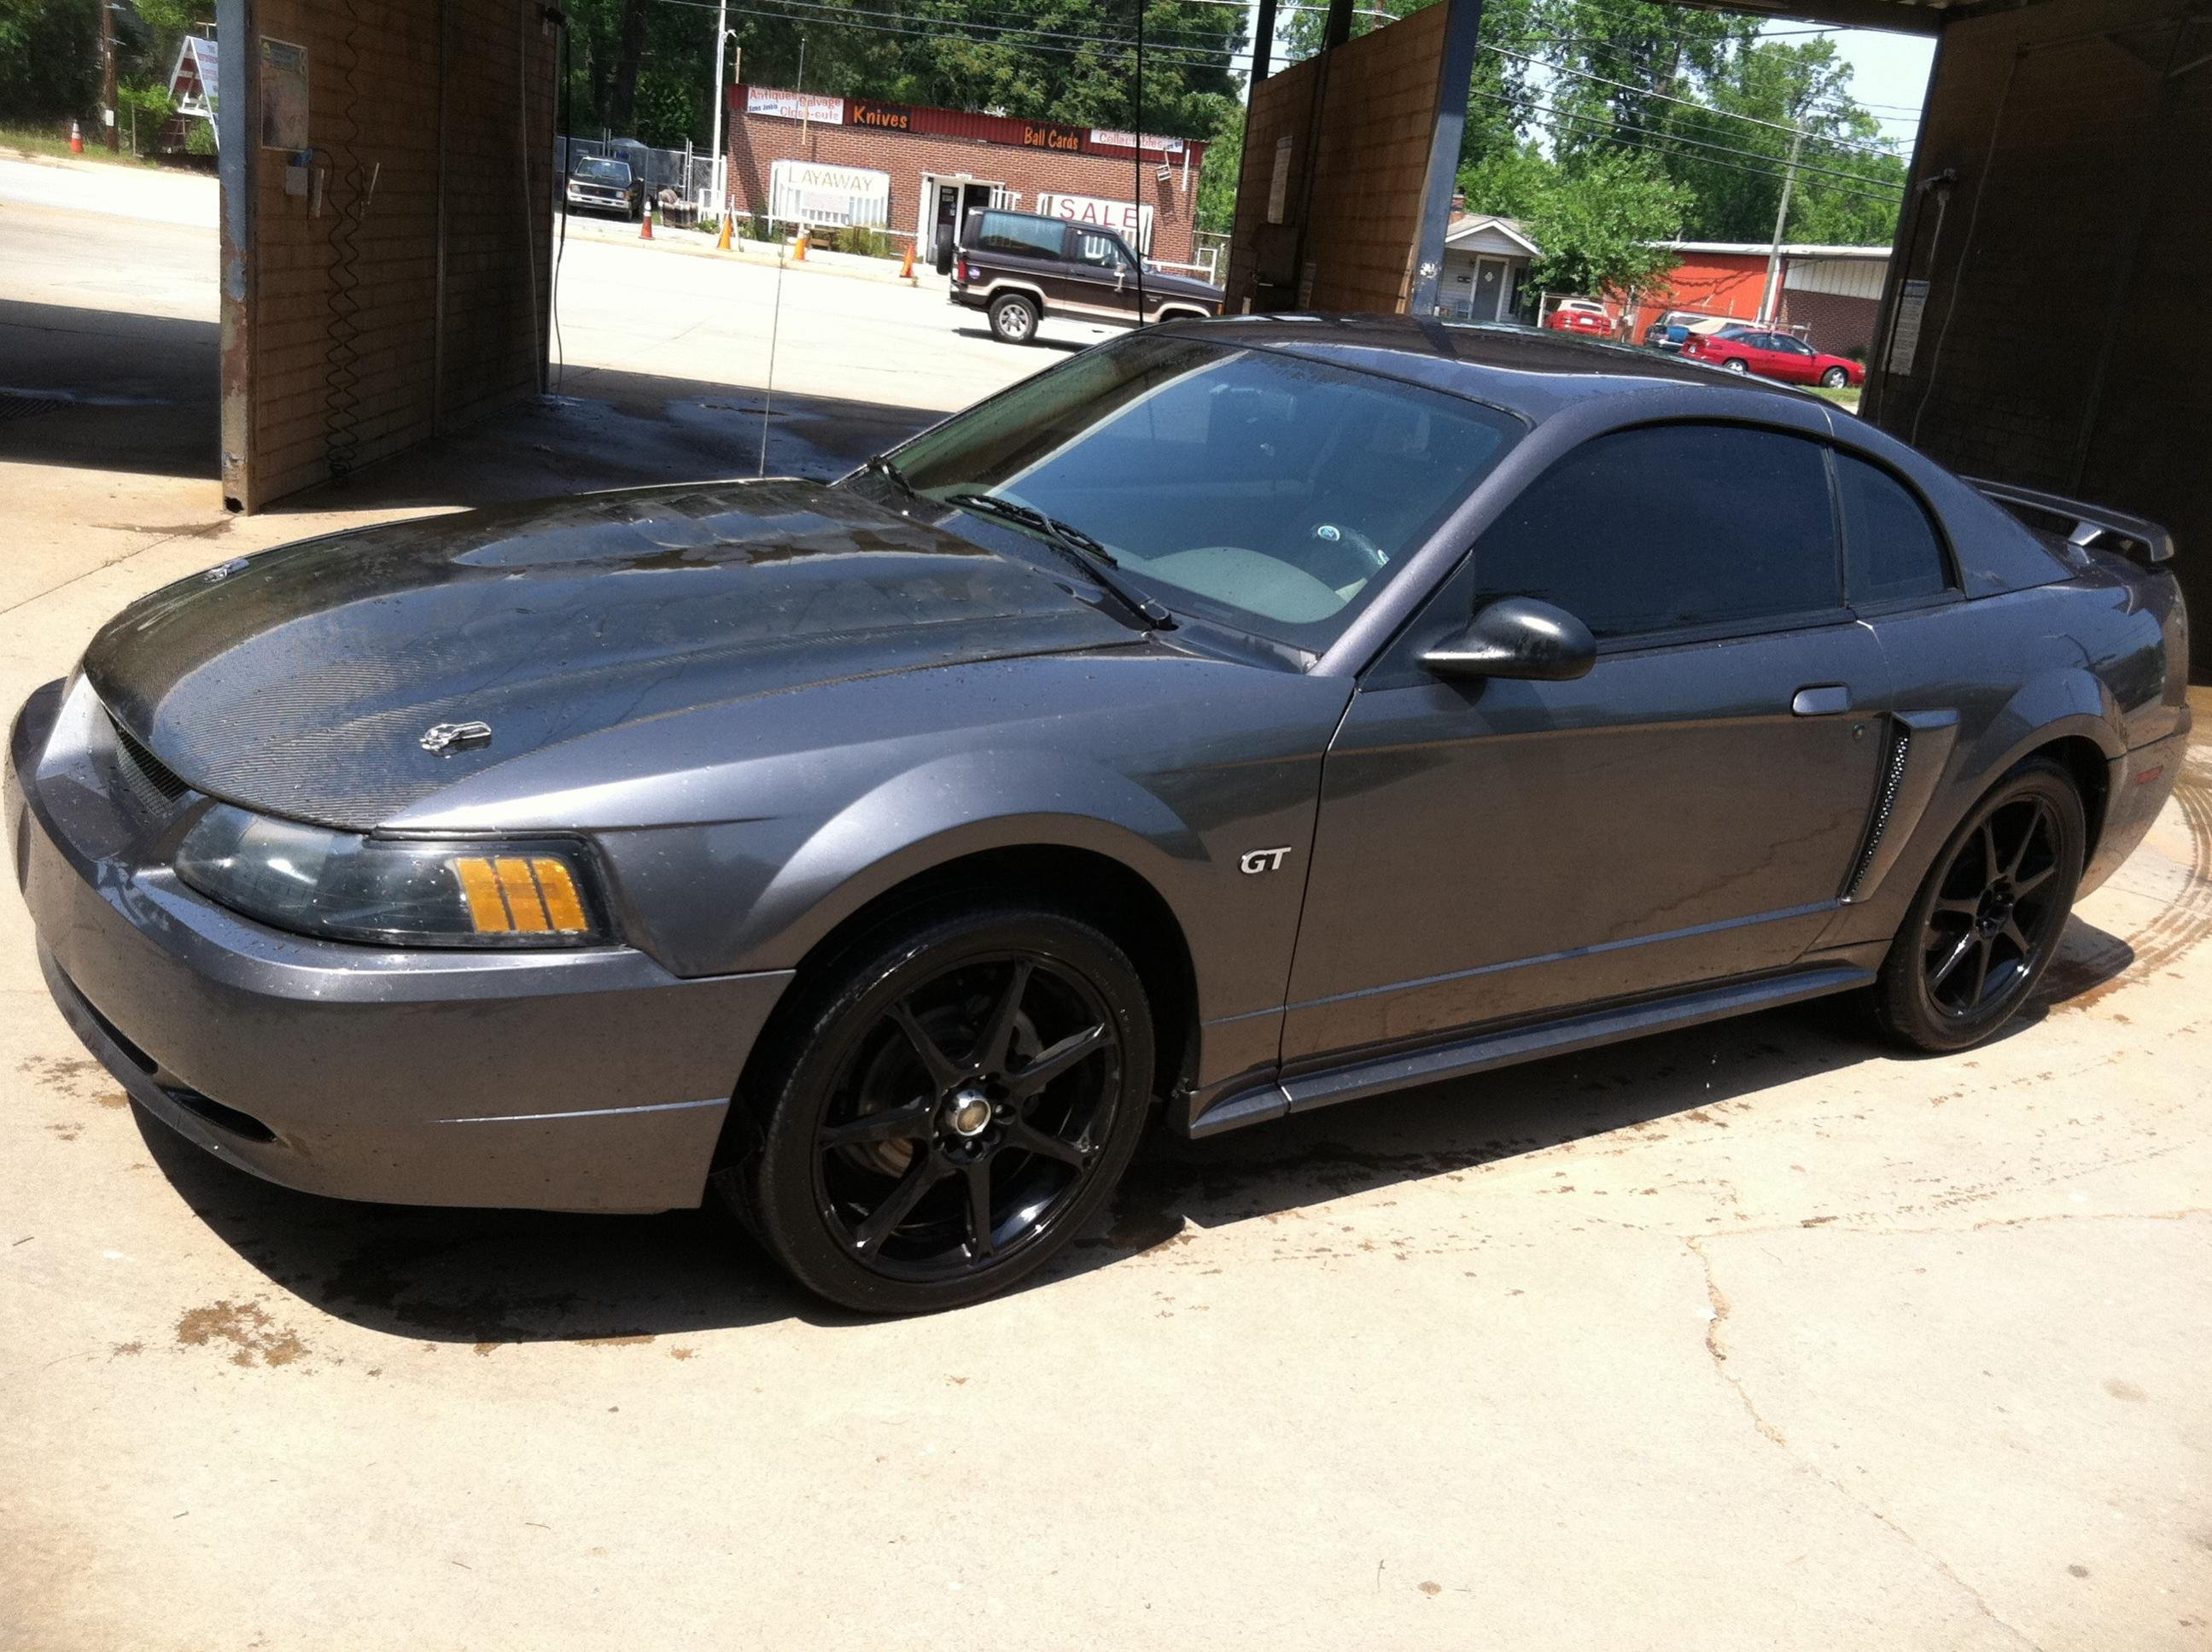 2003 mustang gt bumper replacement ford mustang forum. Black Bedroom Furniture Sets. Home Design Ideas